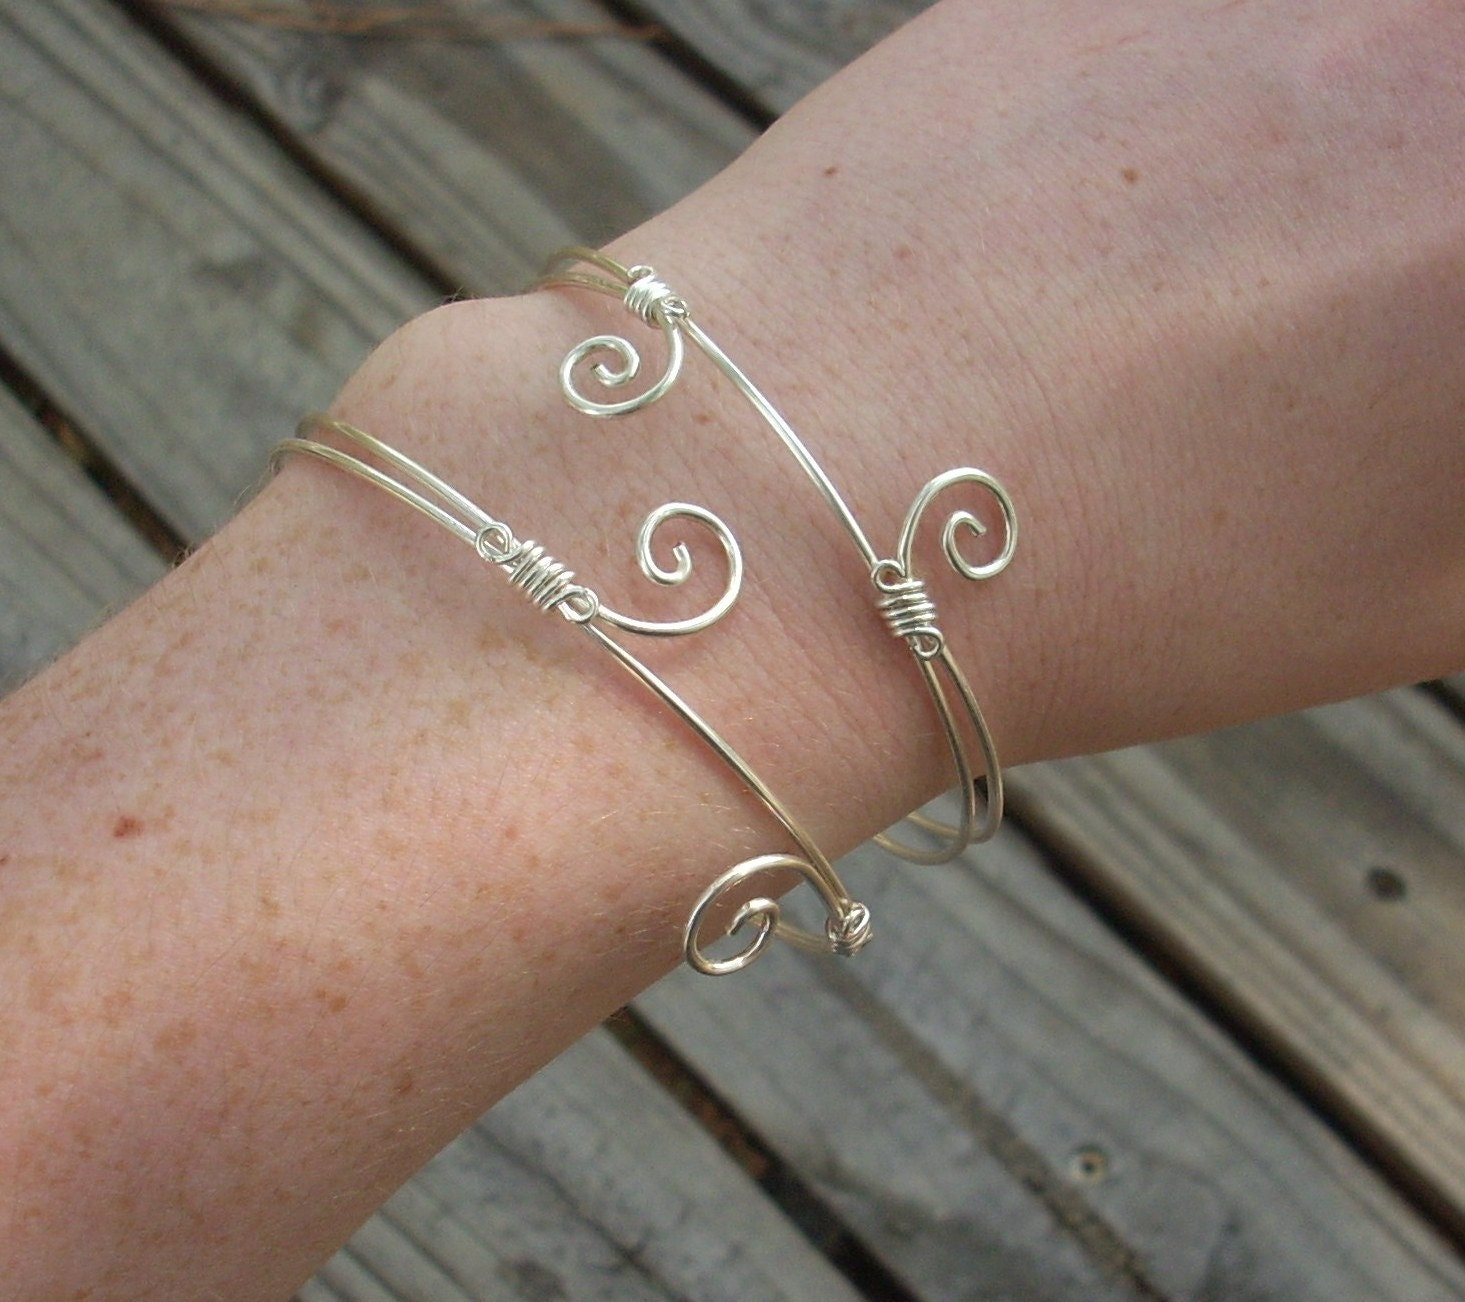 Cuff Bangle Bracelet: Adjustable Silver Wire Bangle Bracelet/Upper Arm Torc Cuff